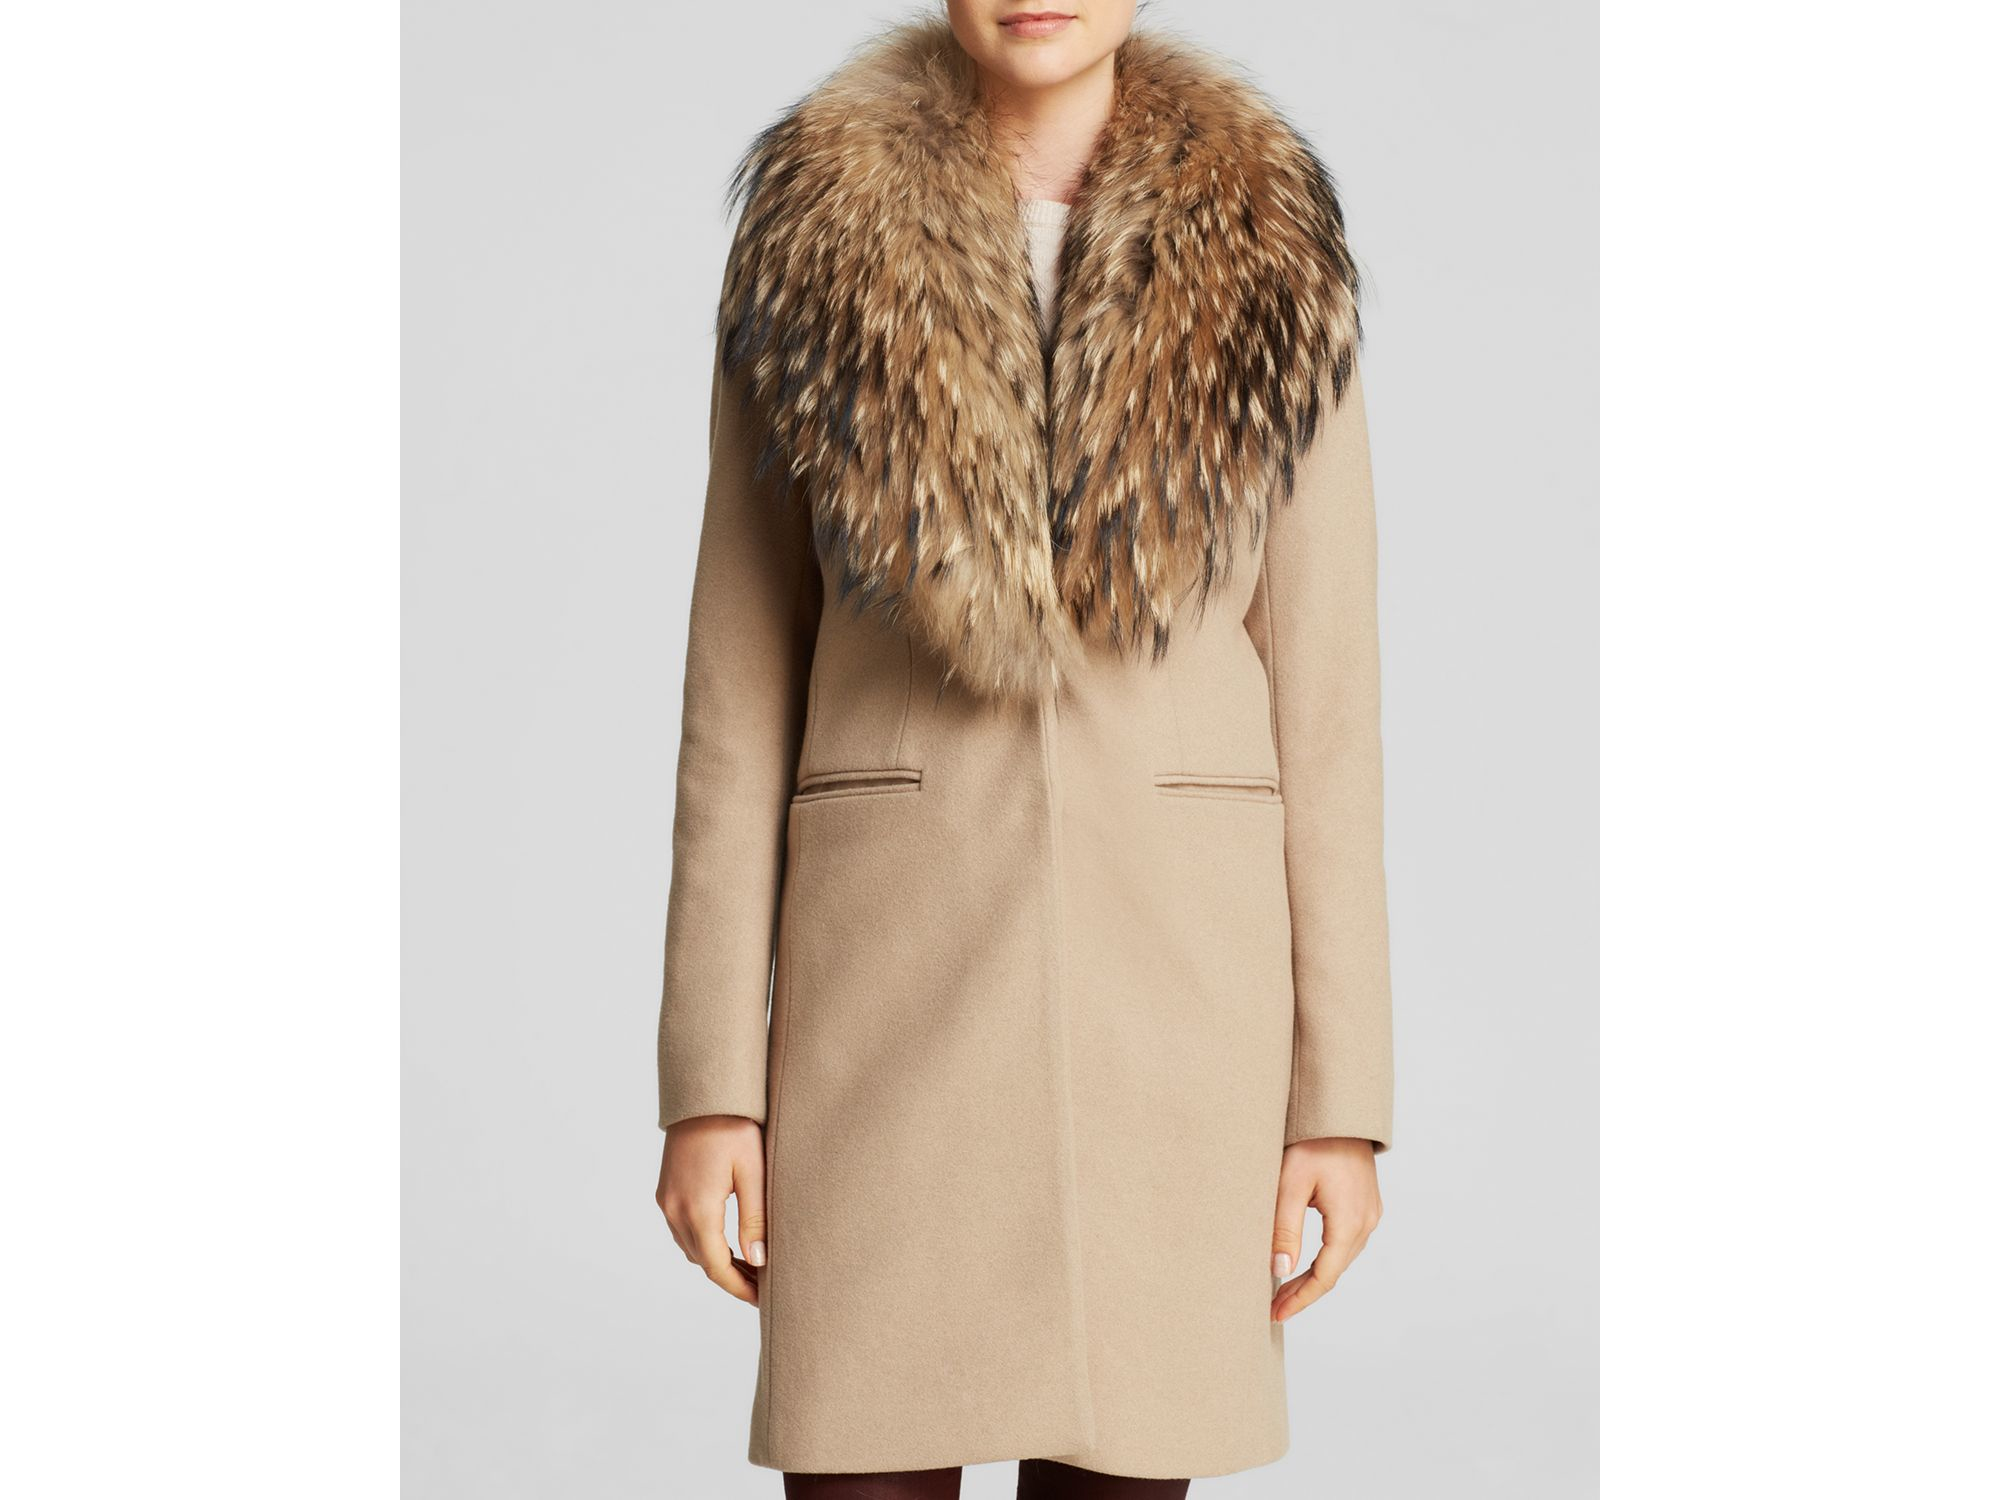 Sam. Crosby Wool Coat With Fur Trim in Brown | Lyst